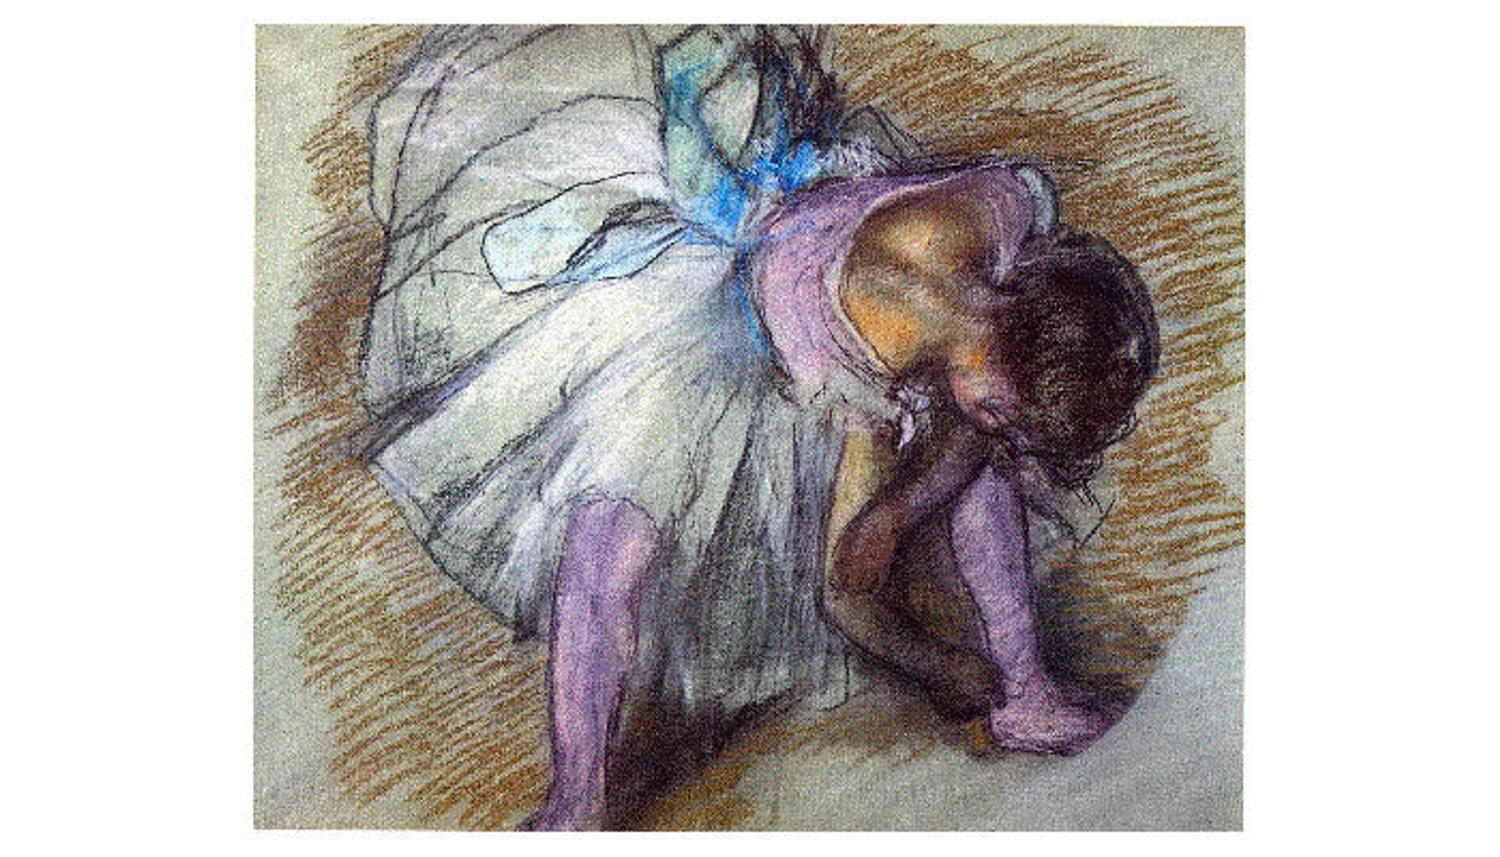 A 7 6 Million Degas Painting Stolen From Cyprus Residence